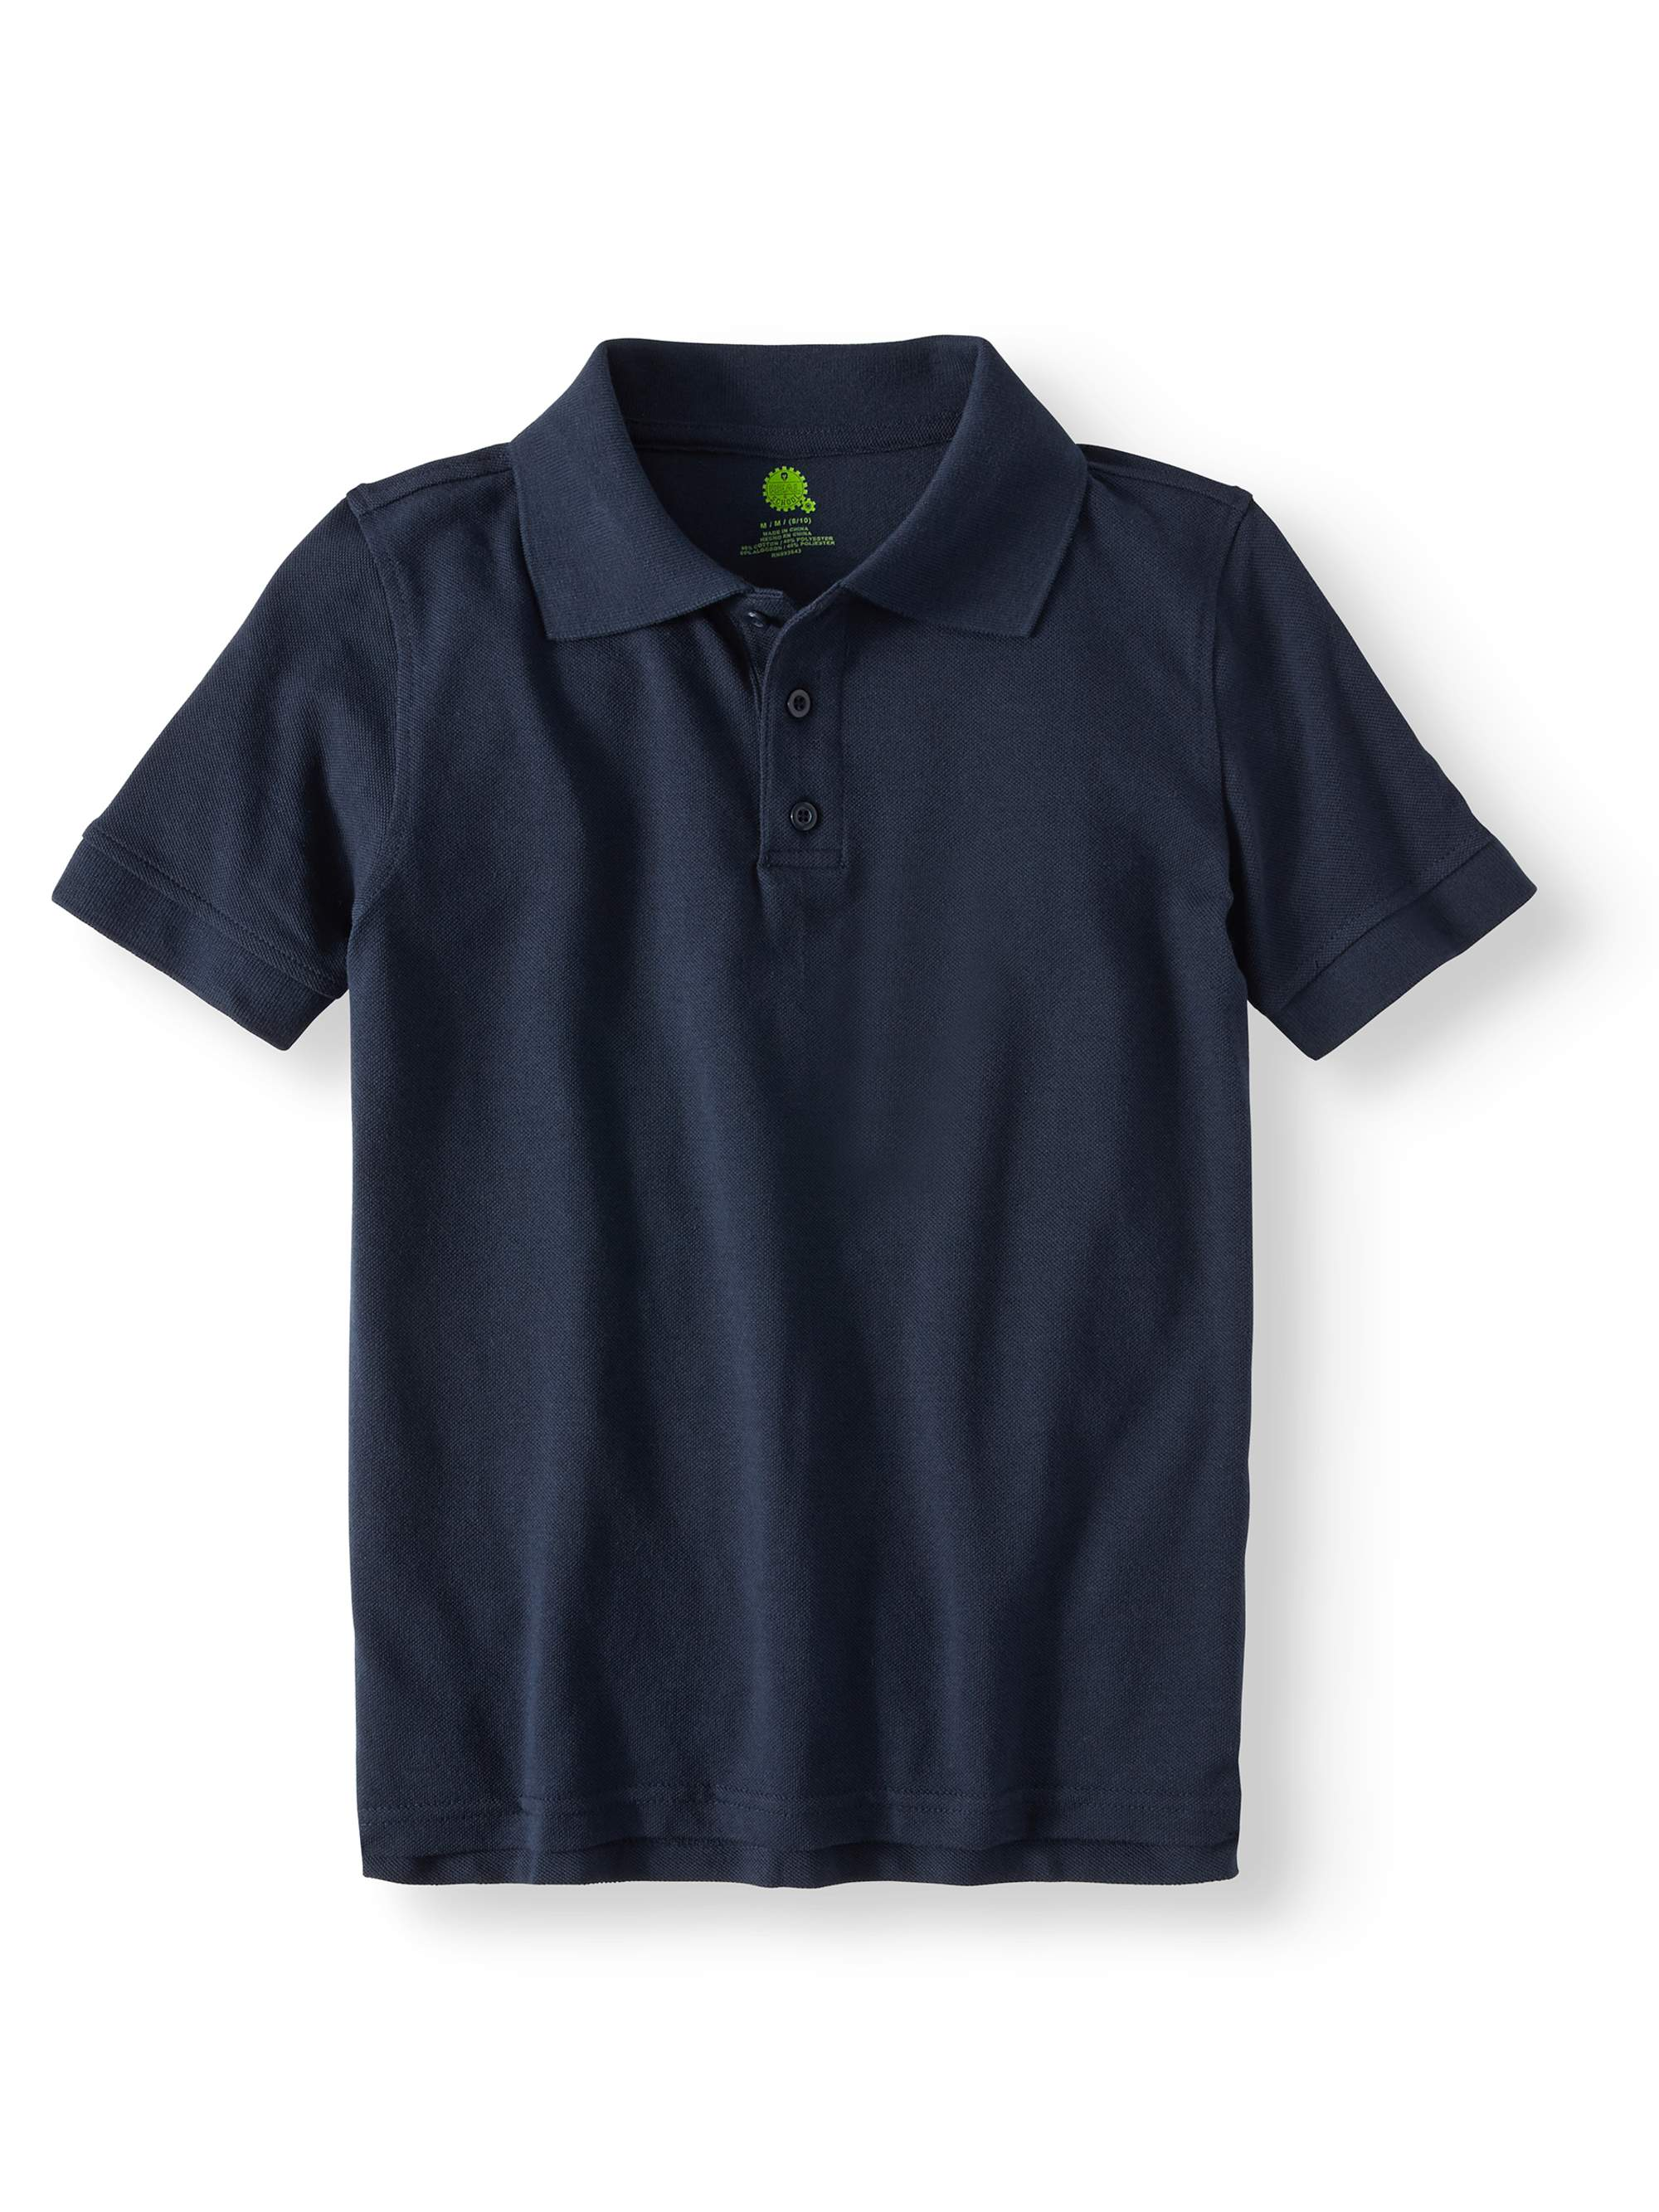 Boys Short Sleeve Pique Polo Shirt School Uniform Approved